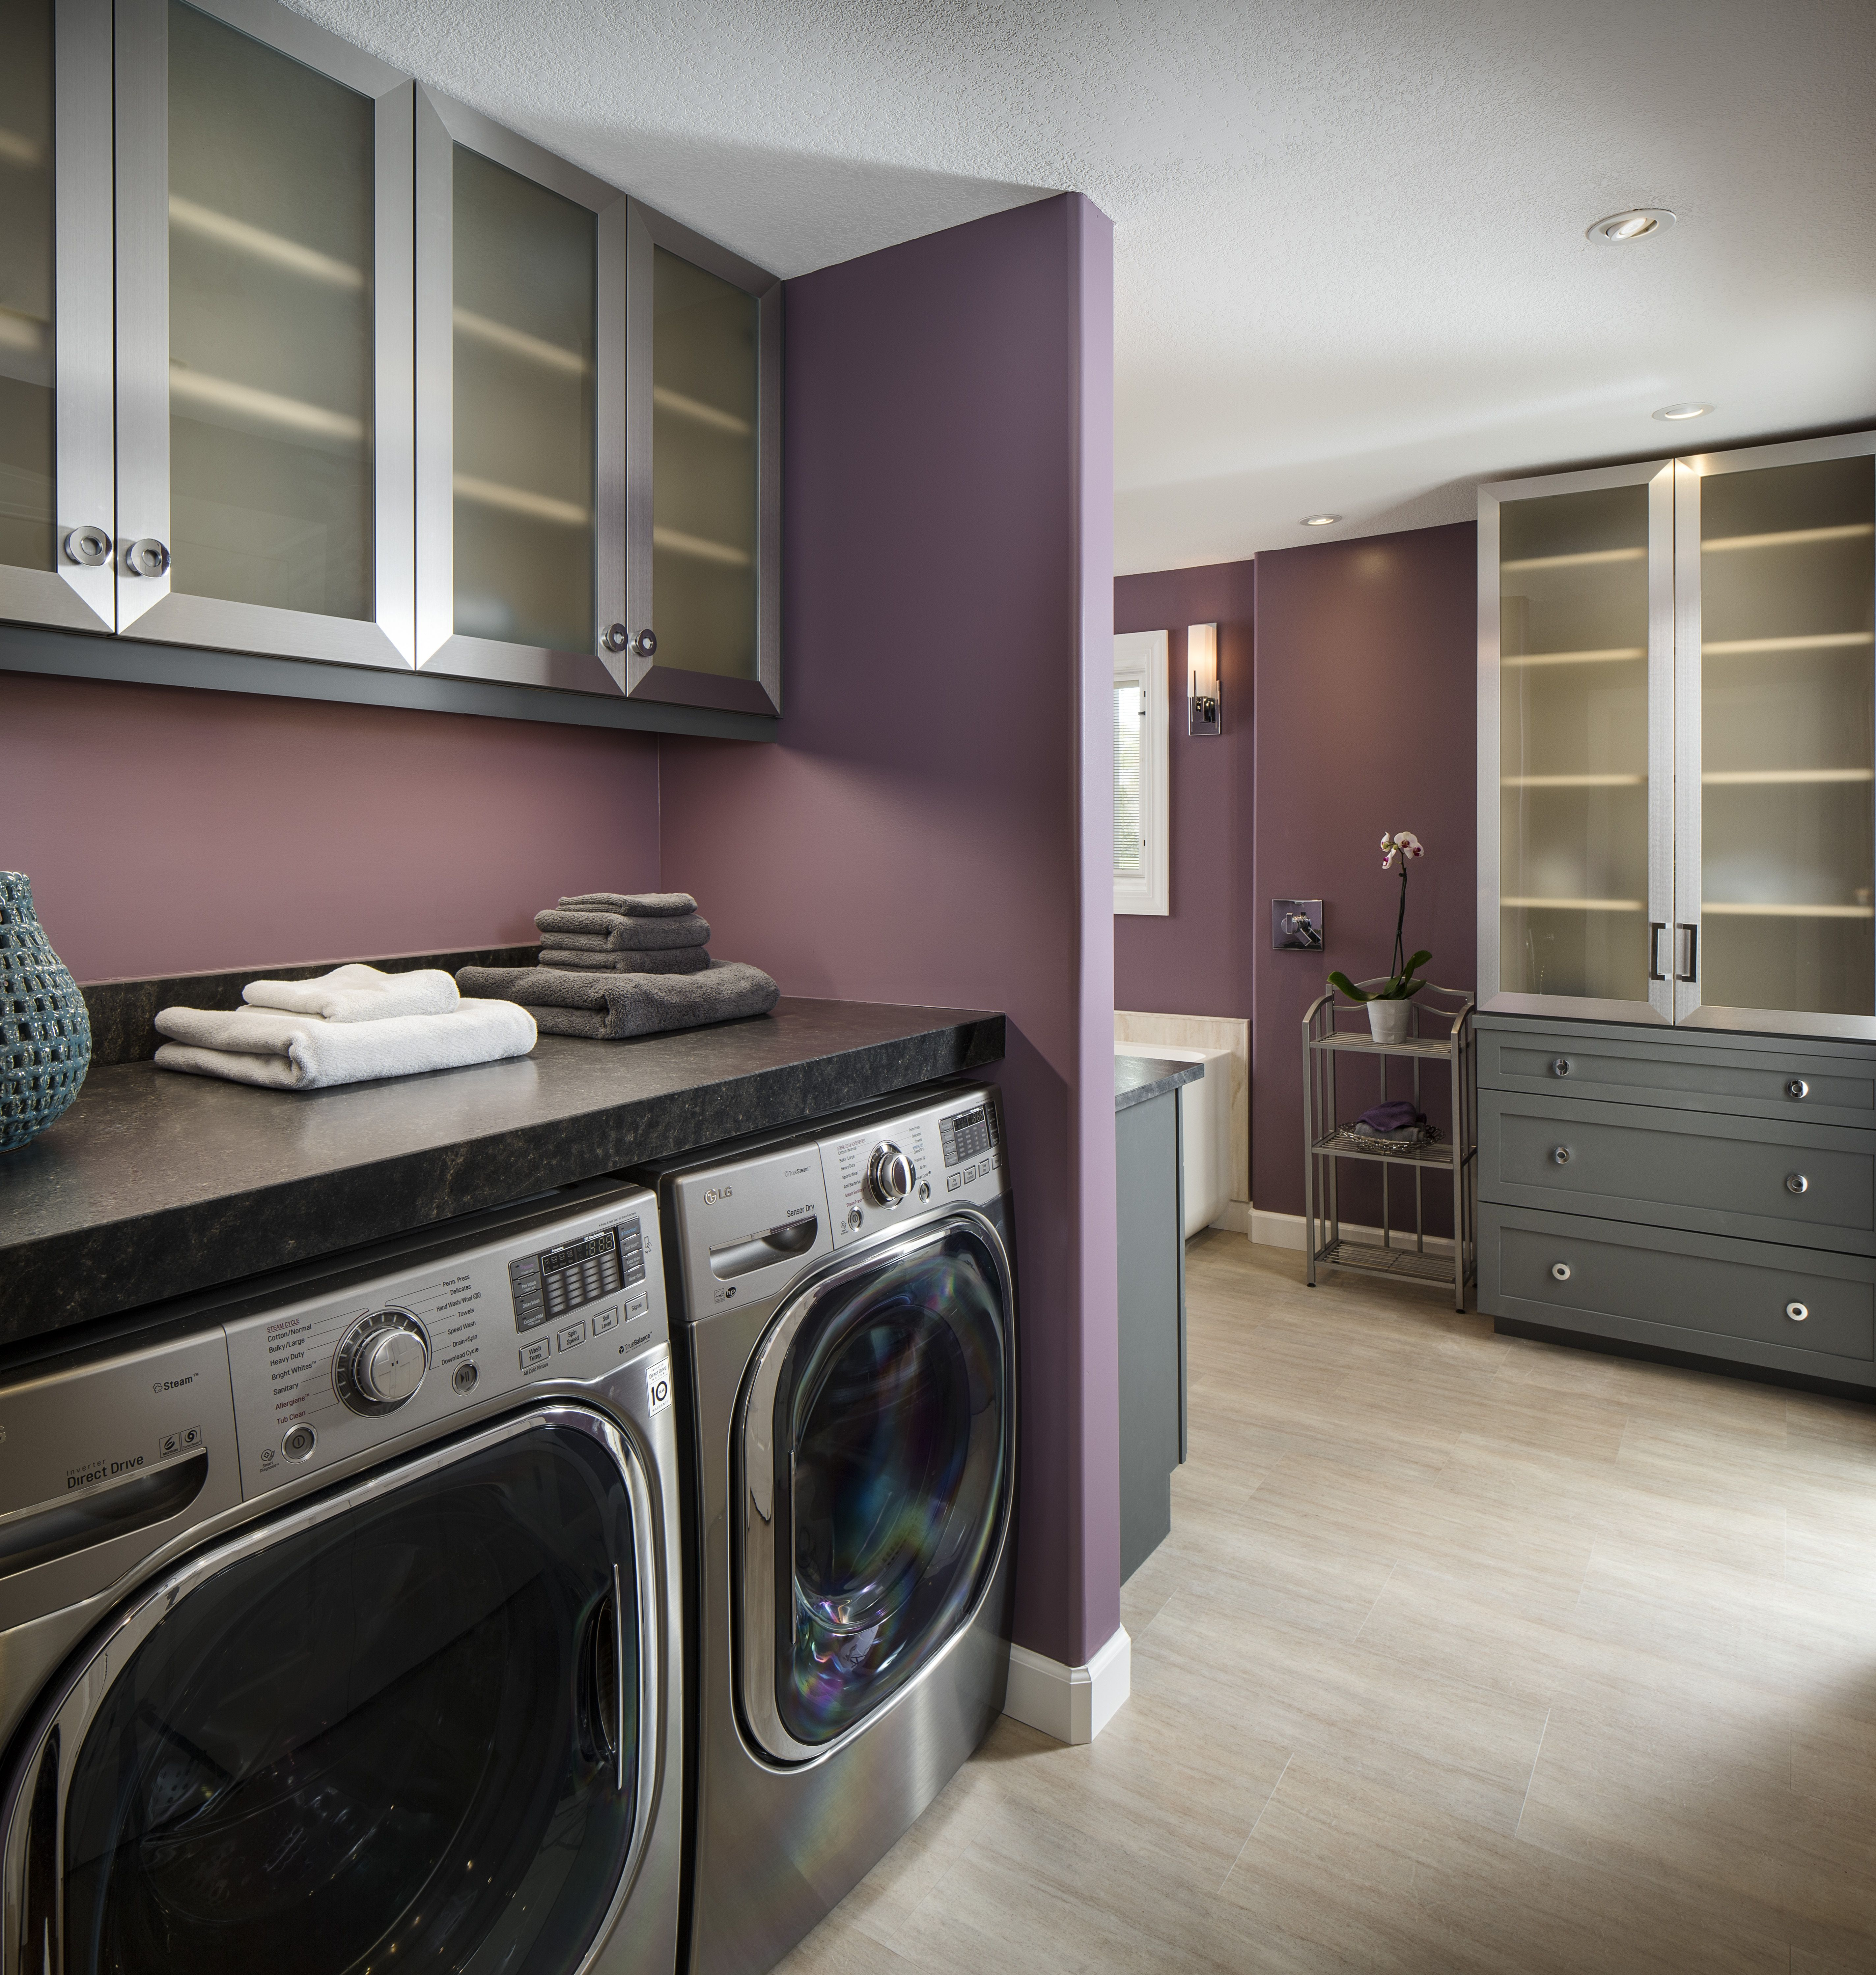 Bathroom laundry combo gives empty space functionality